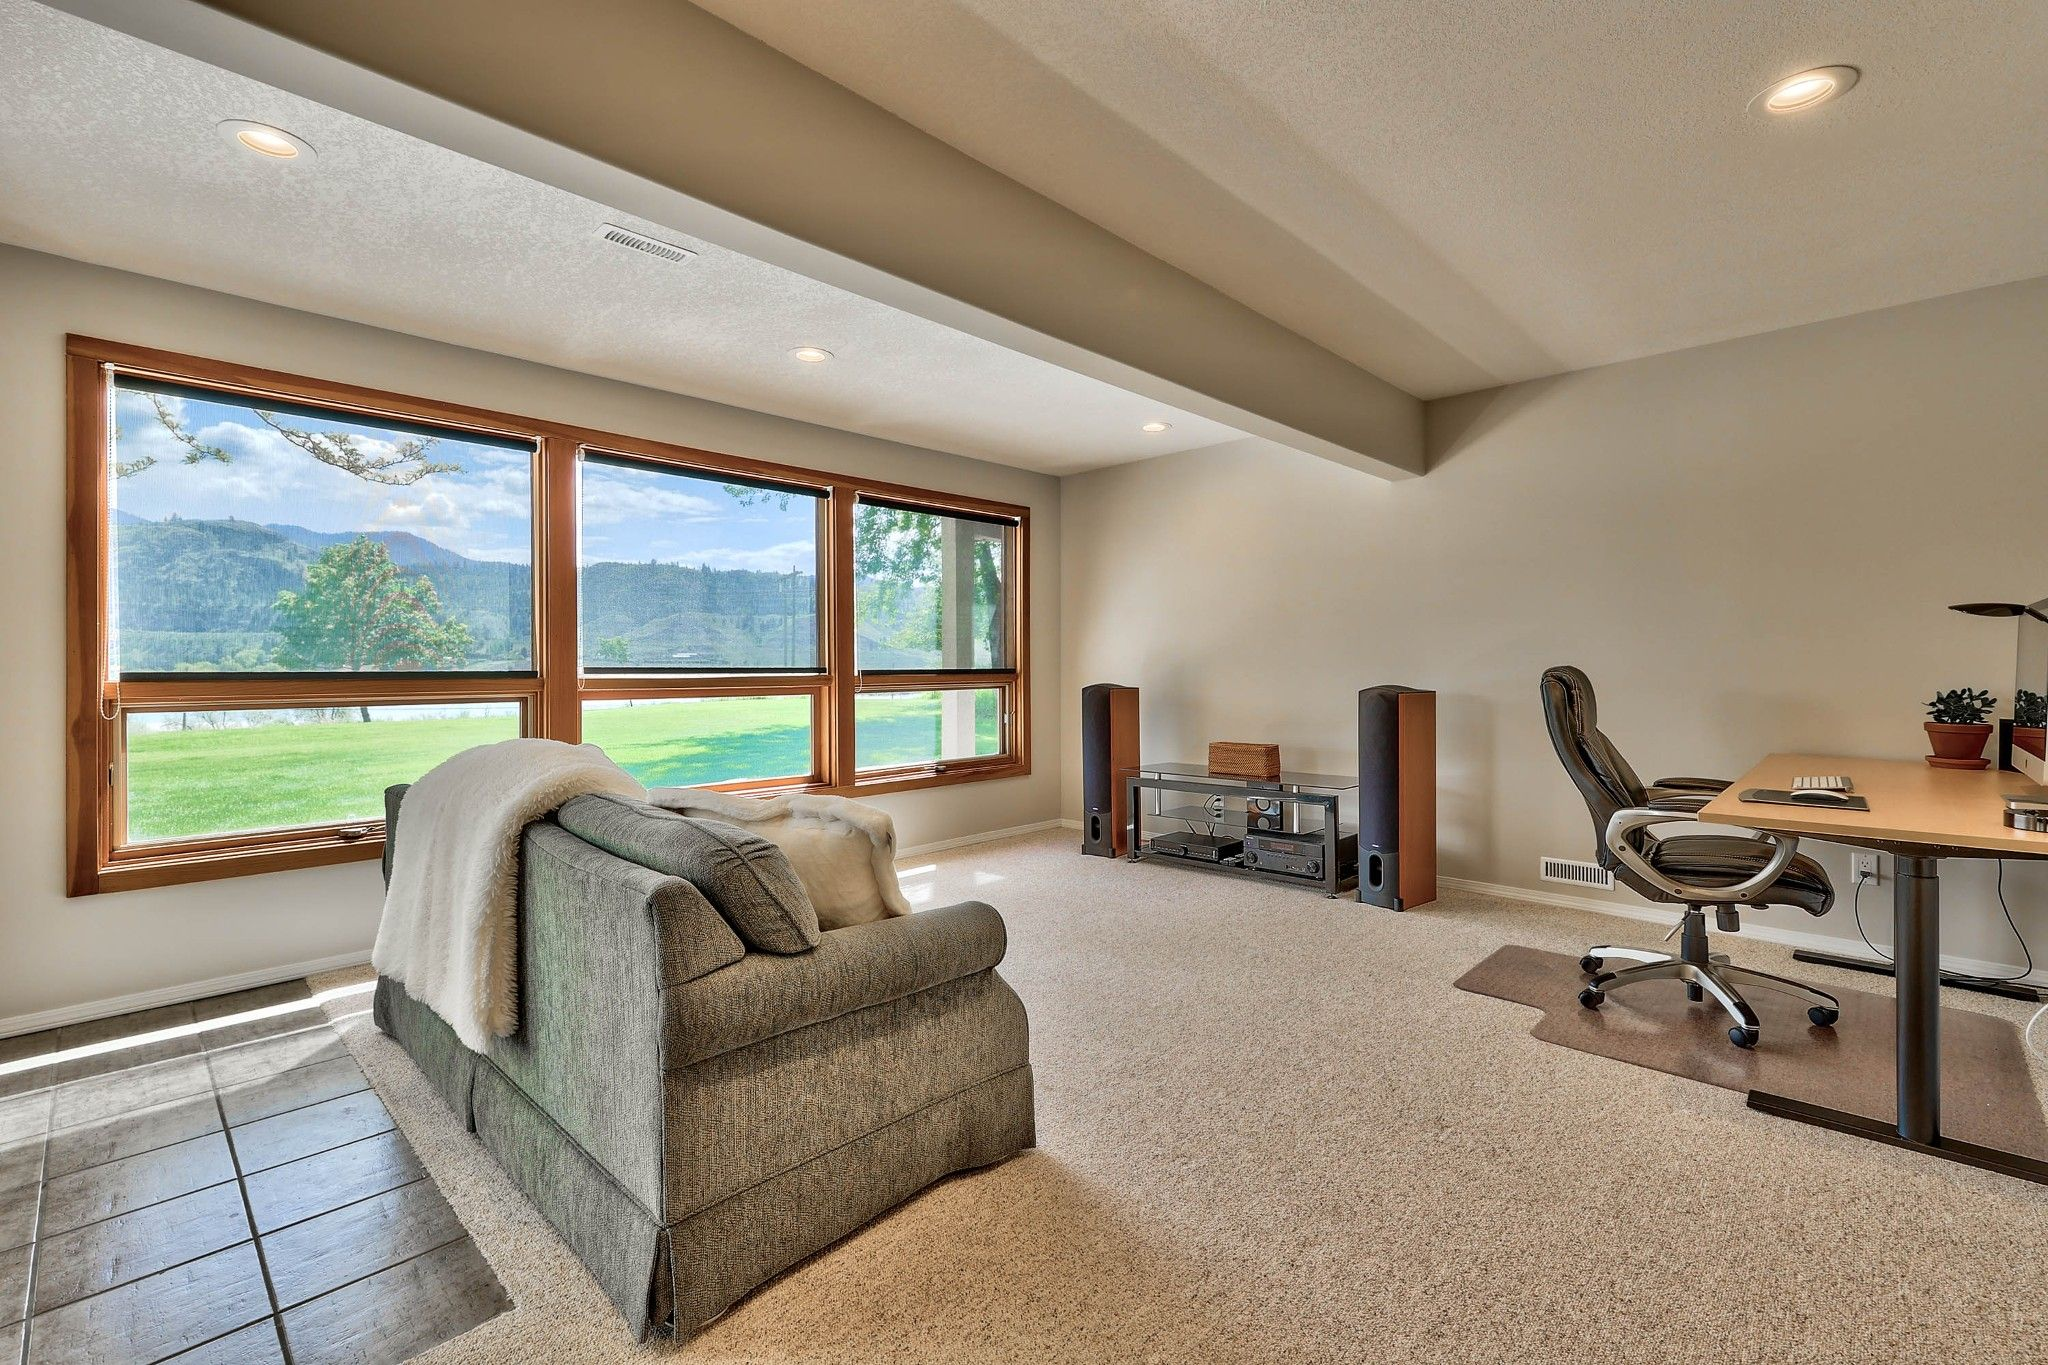 Photo 28: Photos: 3299 E Shuswap Road in Kamloops: South Thompson Valley House for sale : MLS®# 162162